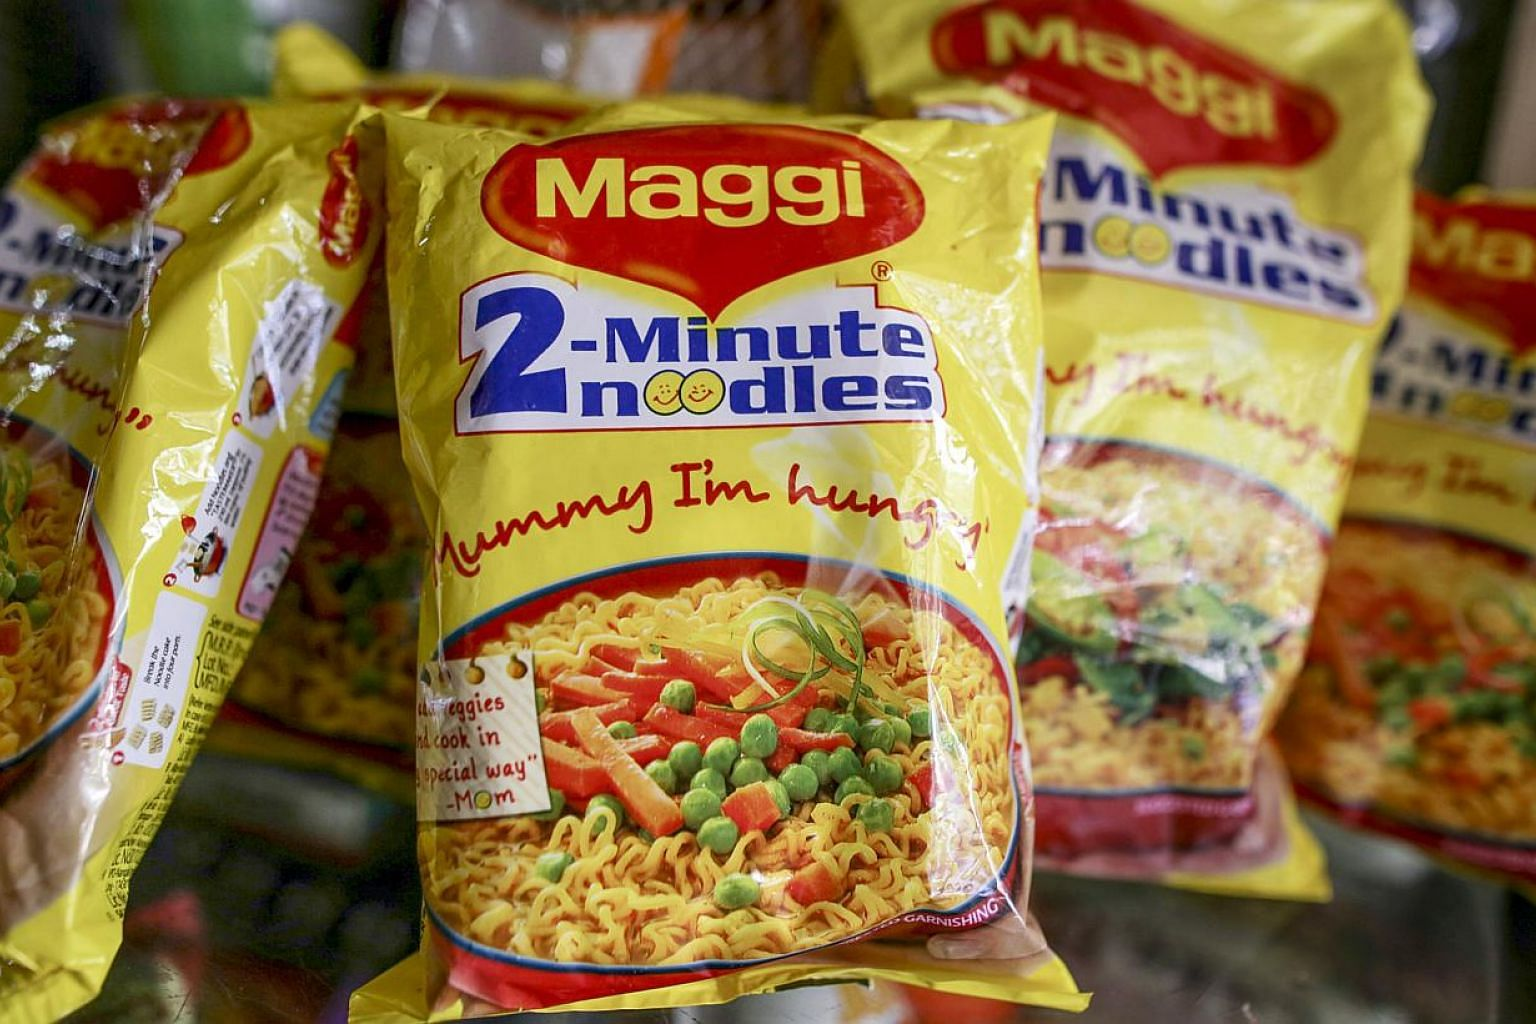 Packets of Maggi noodles, manufactured by Nestle India, are seen at a general store in Mumbai on June 2, 2015. The India-made noodles are safe to eat, the Agri-Food and Veterinary Authority of Singapore said on Monday night. -- PHOTO: BLOOMBERG